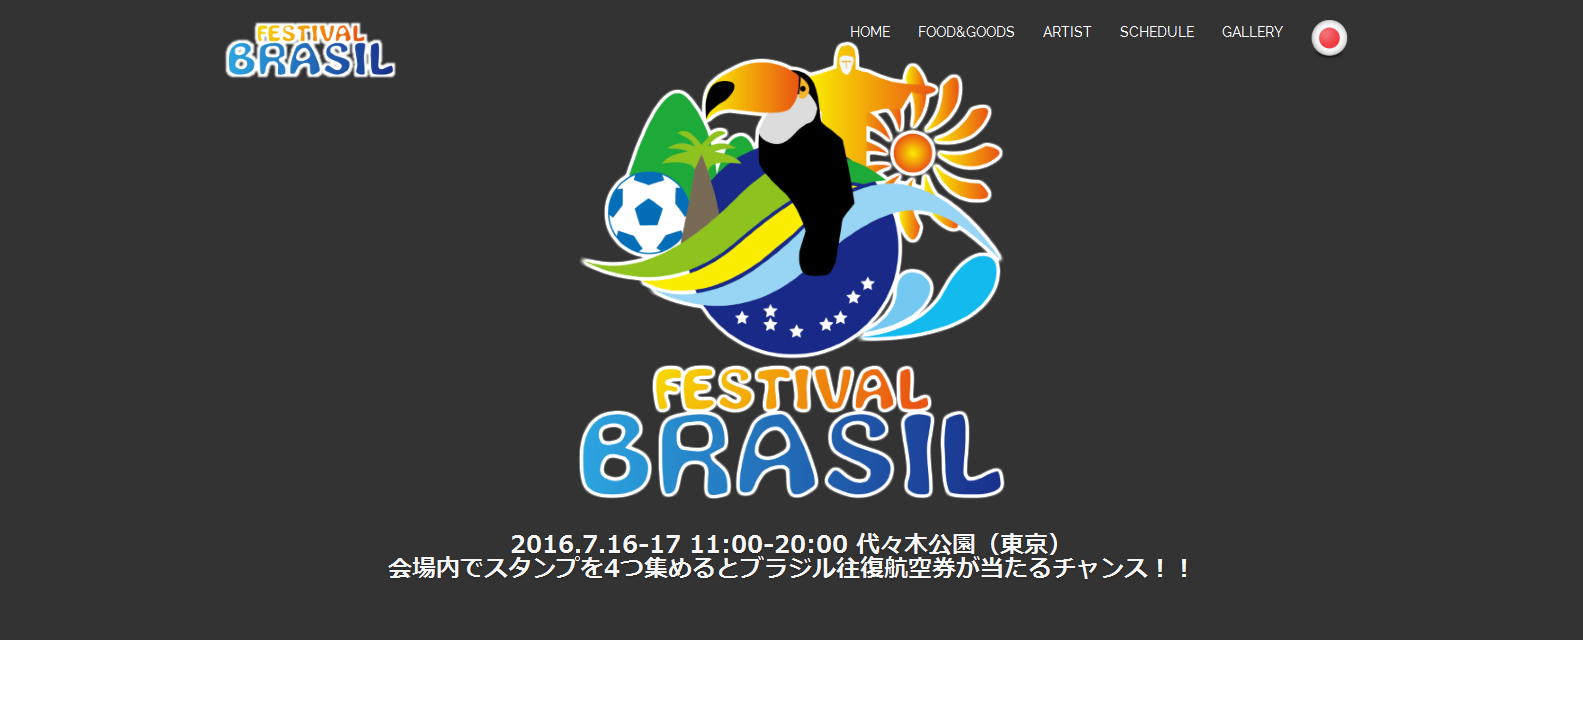 FestivalBrasil2016_WebSite